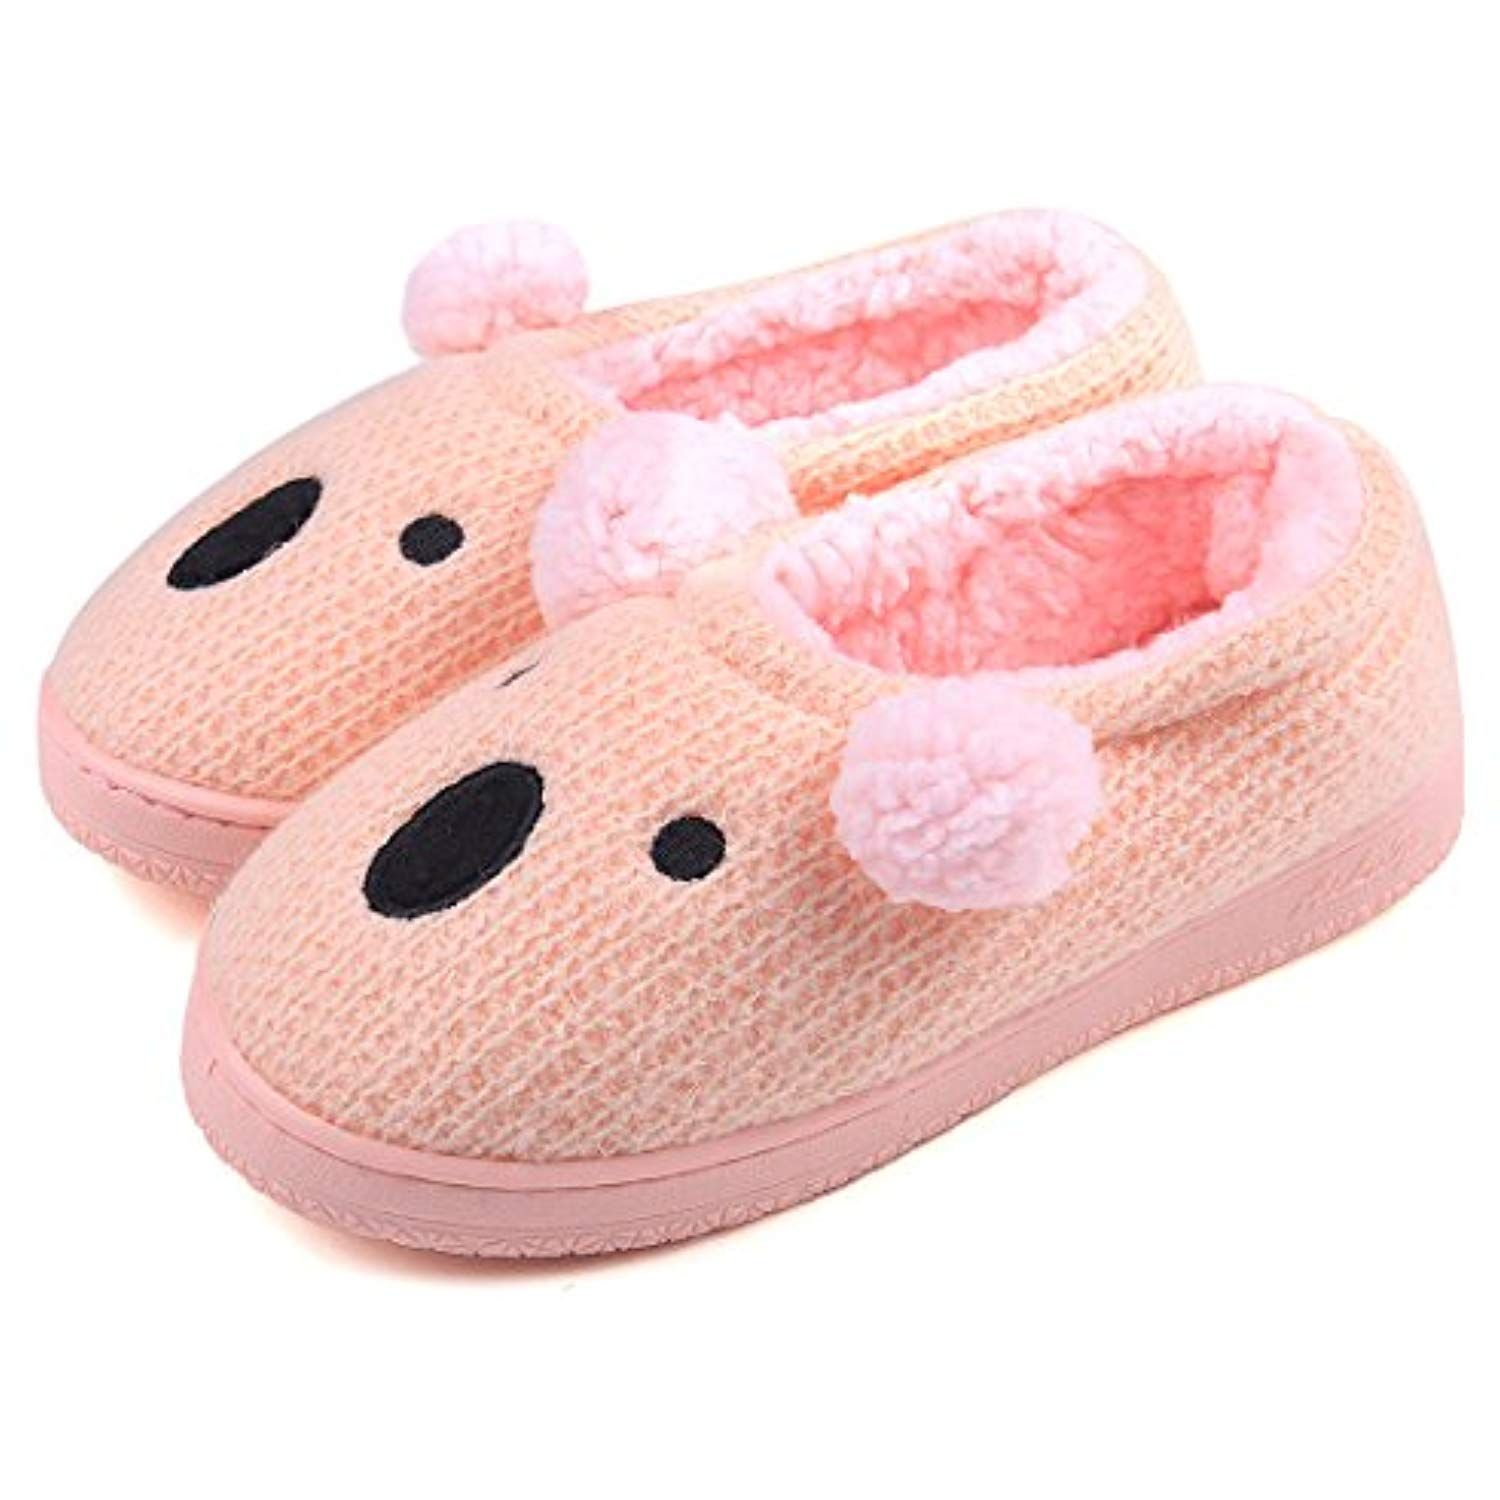 d80c54f9fc10ff Women Soft Cute Warm Winter Animal Slippers Knit Indoor House Shoes (6-6.5  B(M) US